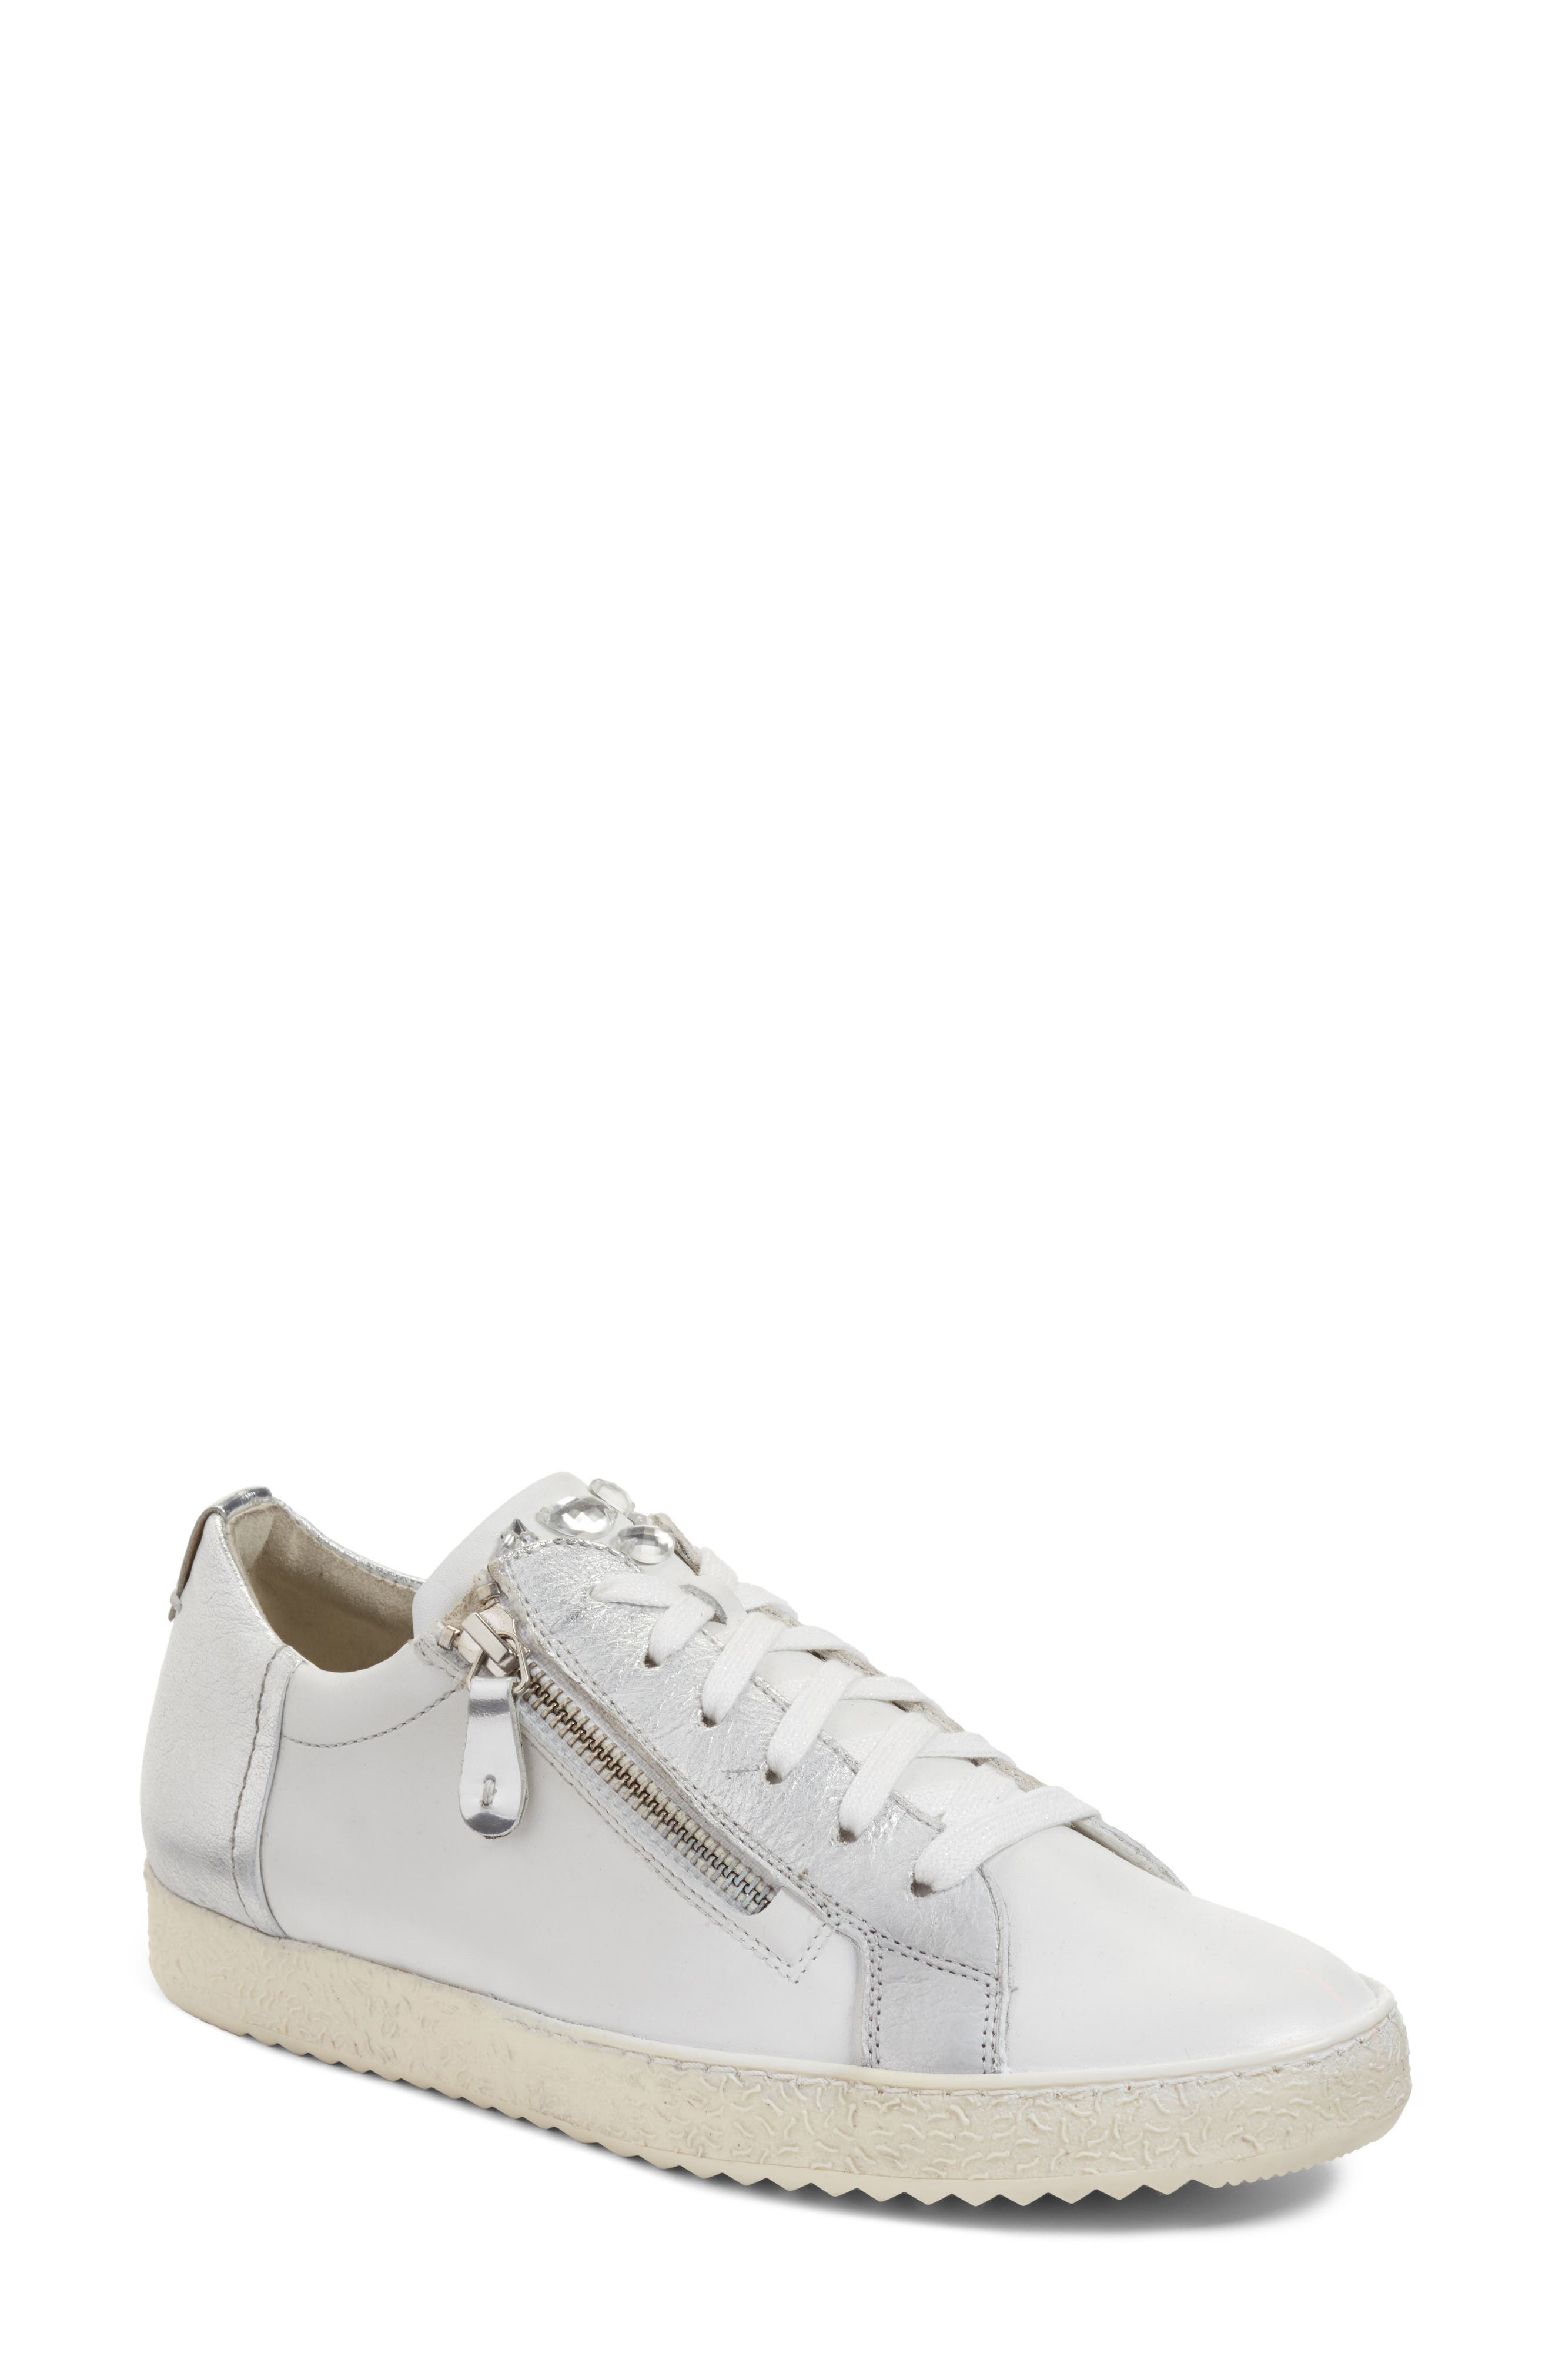 Minnie Sneaker,                             Main thumbnail 1, color,                             White/ Silver Leather